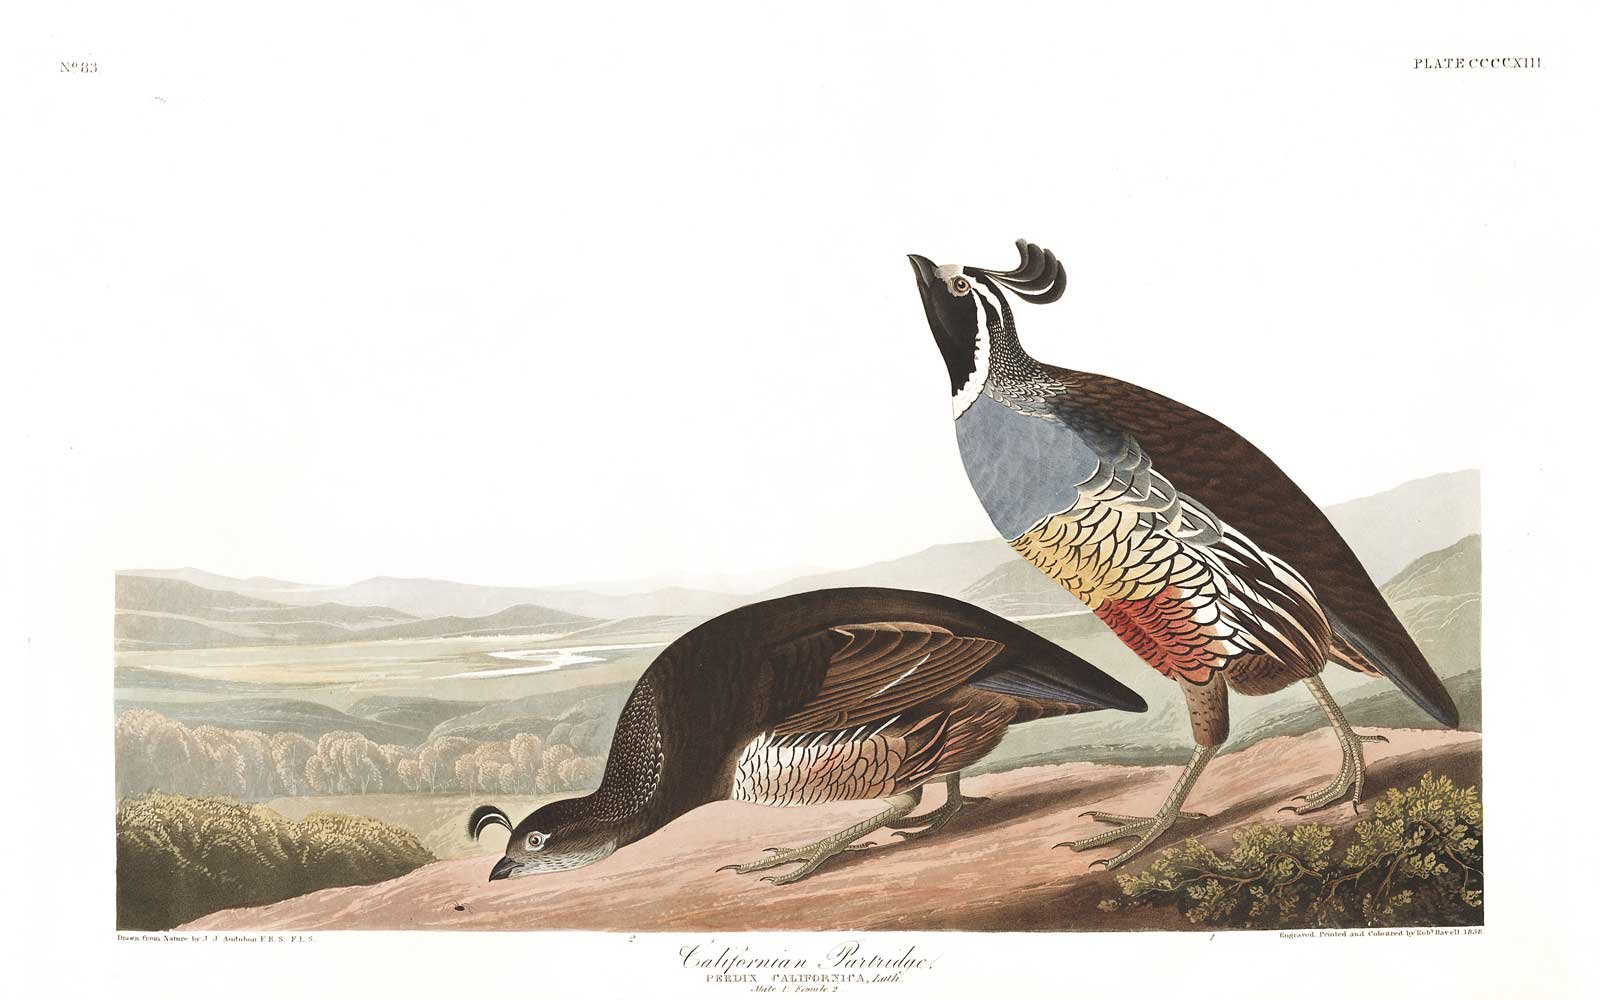 Audubon Birds of America - California Partridge